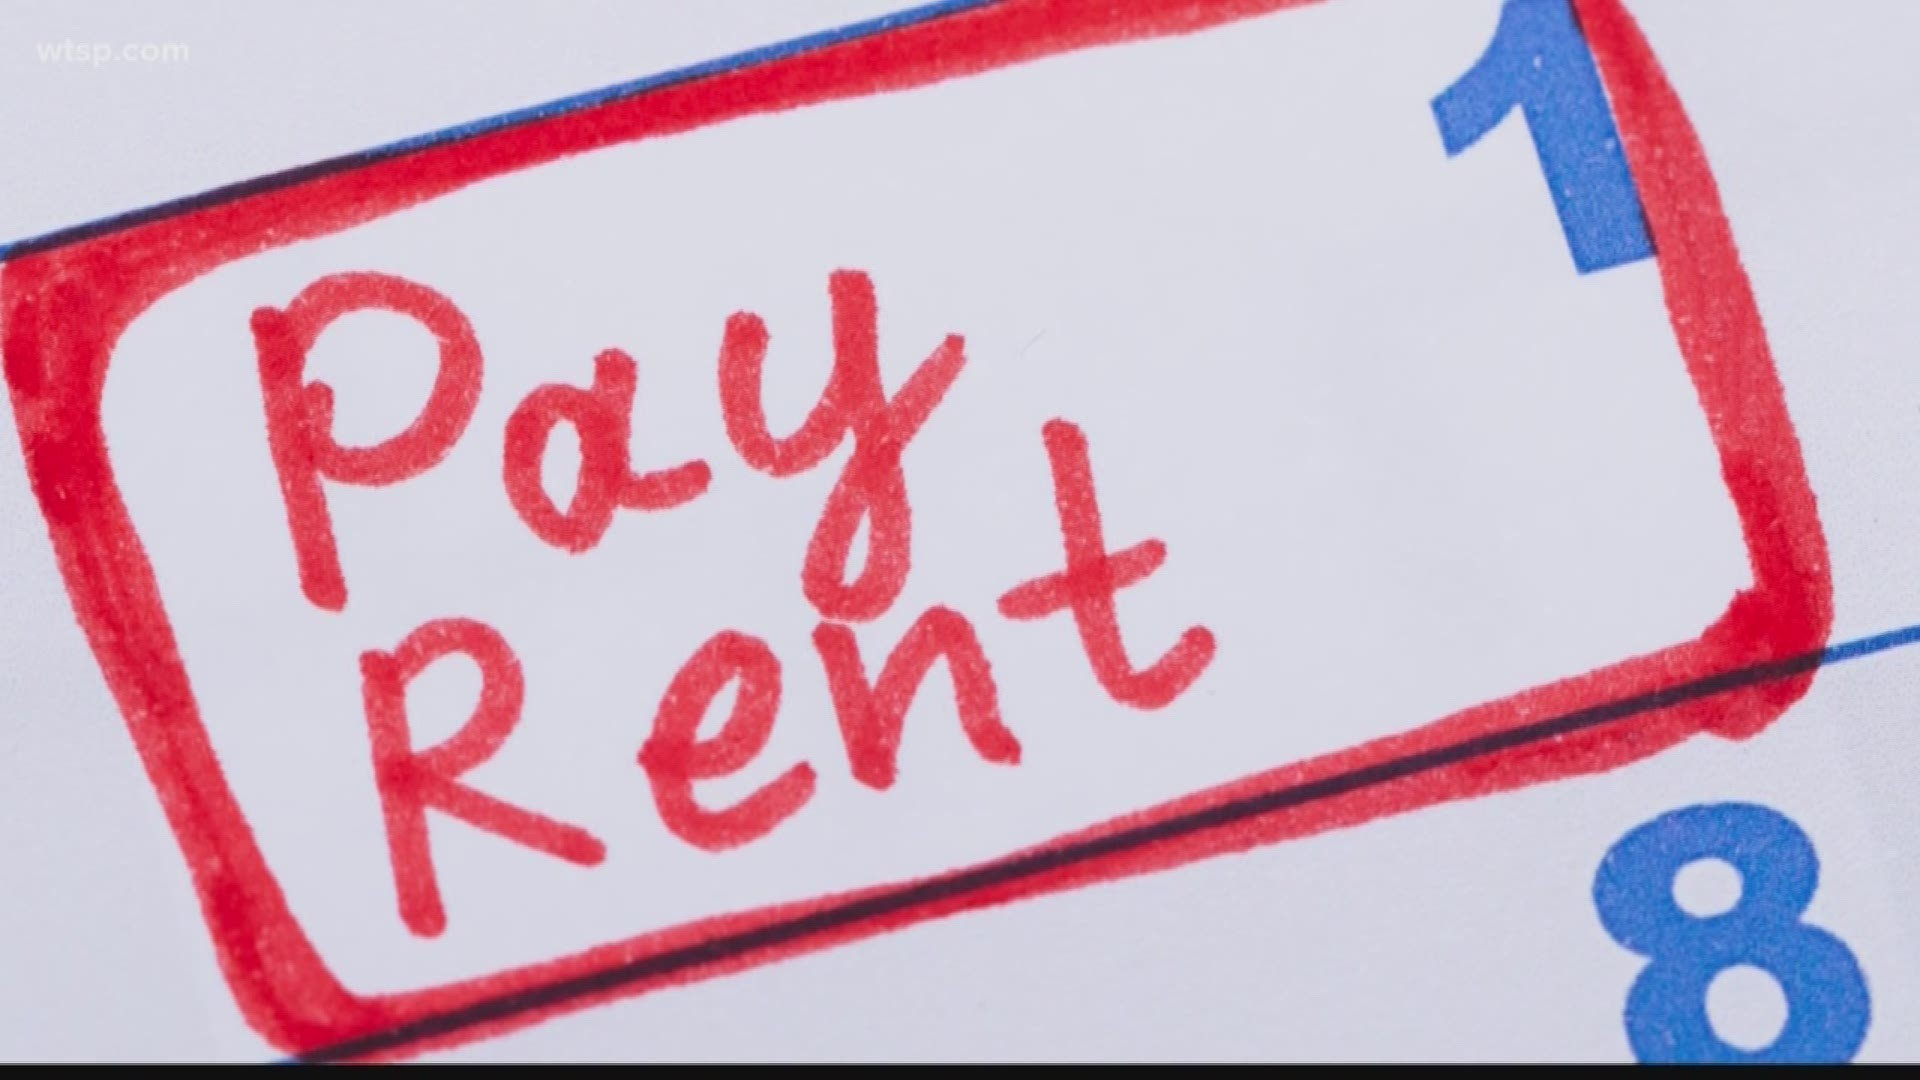 How To Negotiate Rent With Landlord During Covid 19 Pandemic Wtsp Com